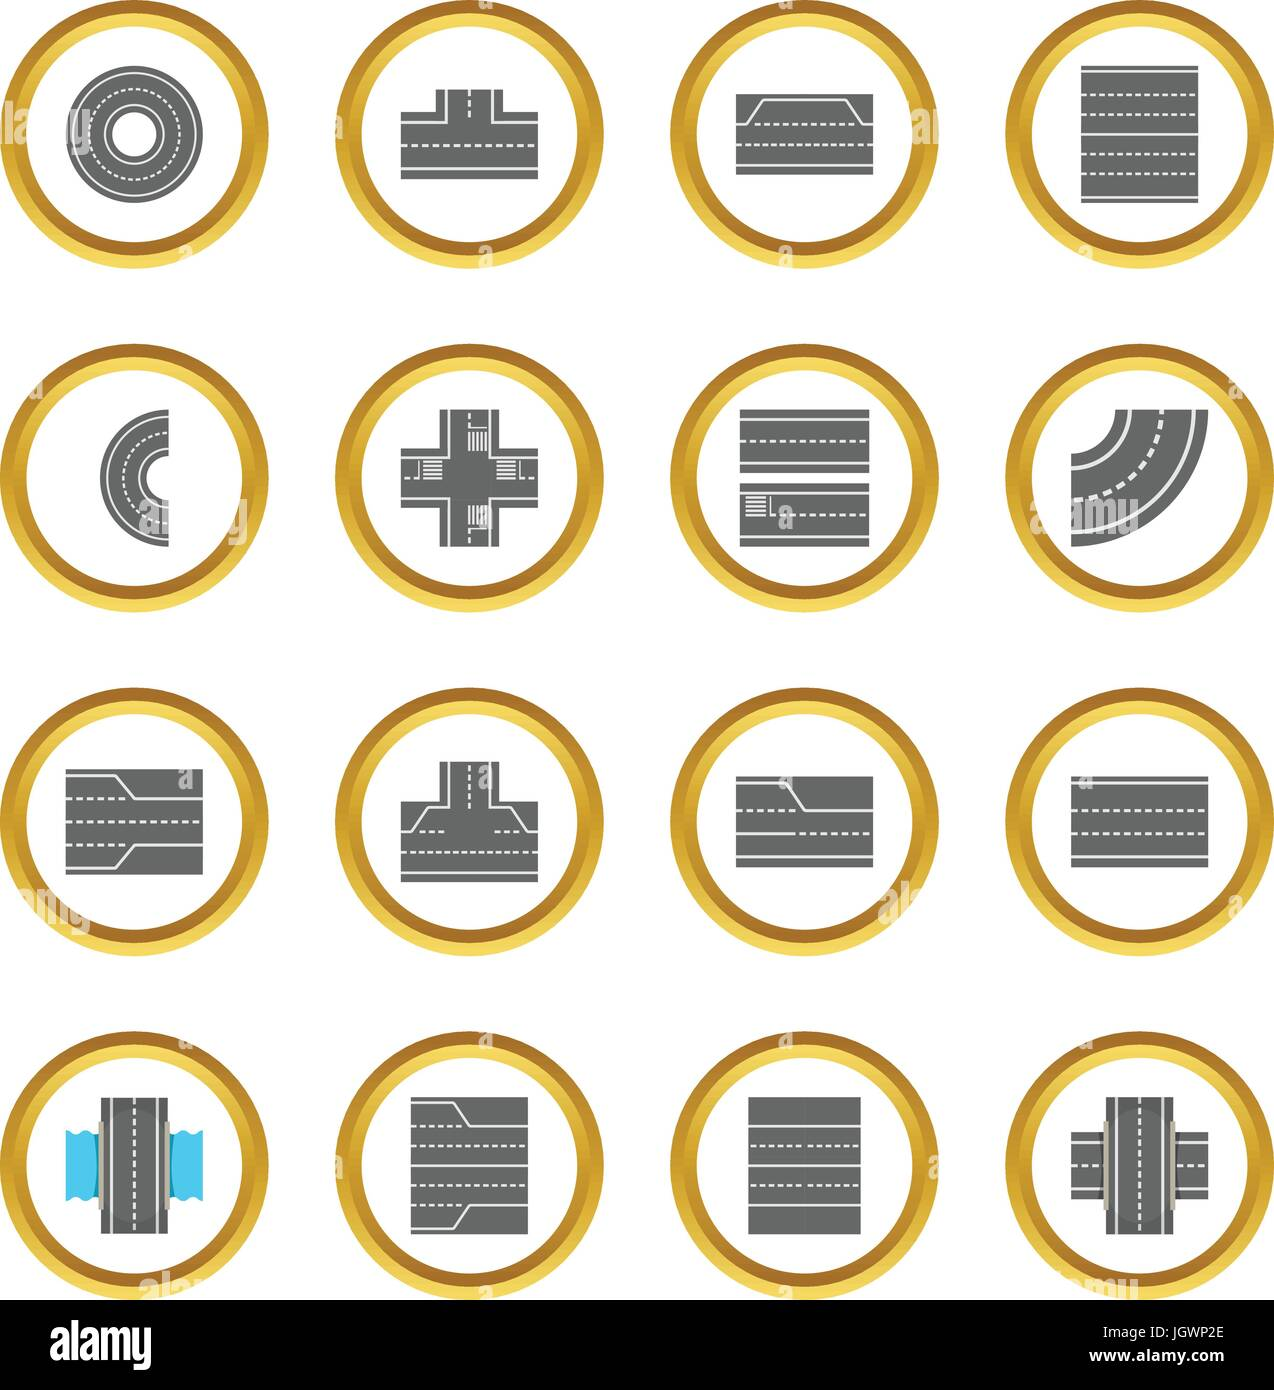 Road elements constructor icons circle - Stock Image